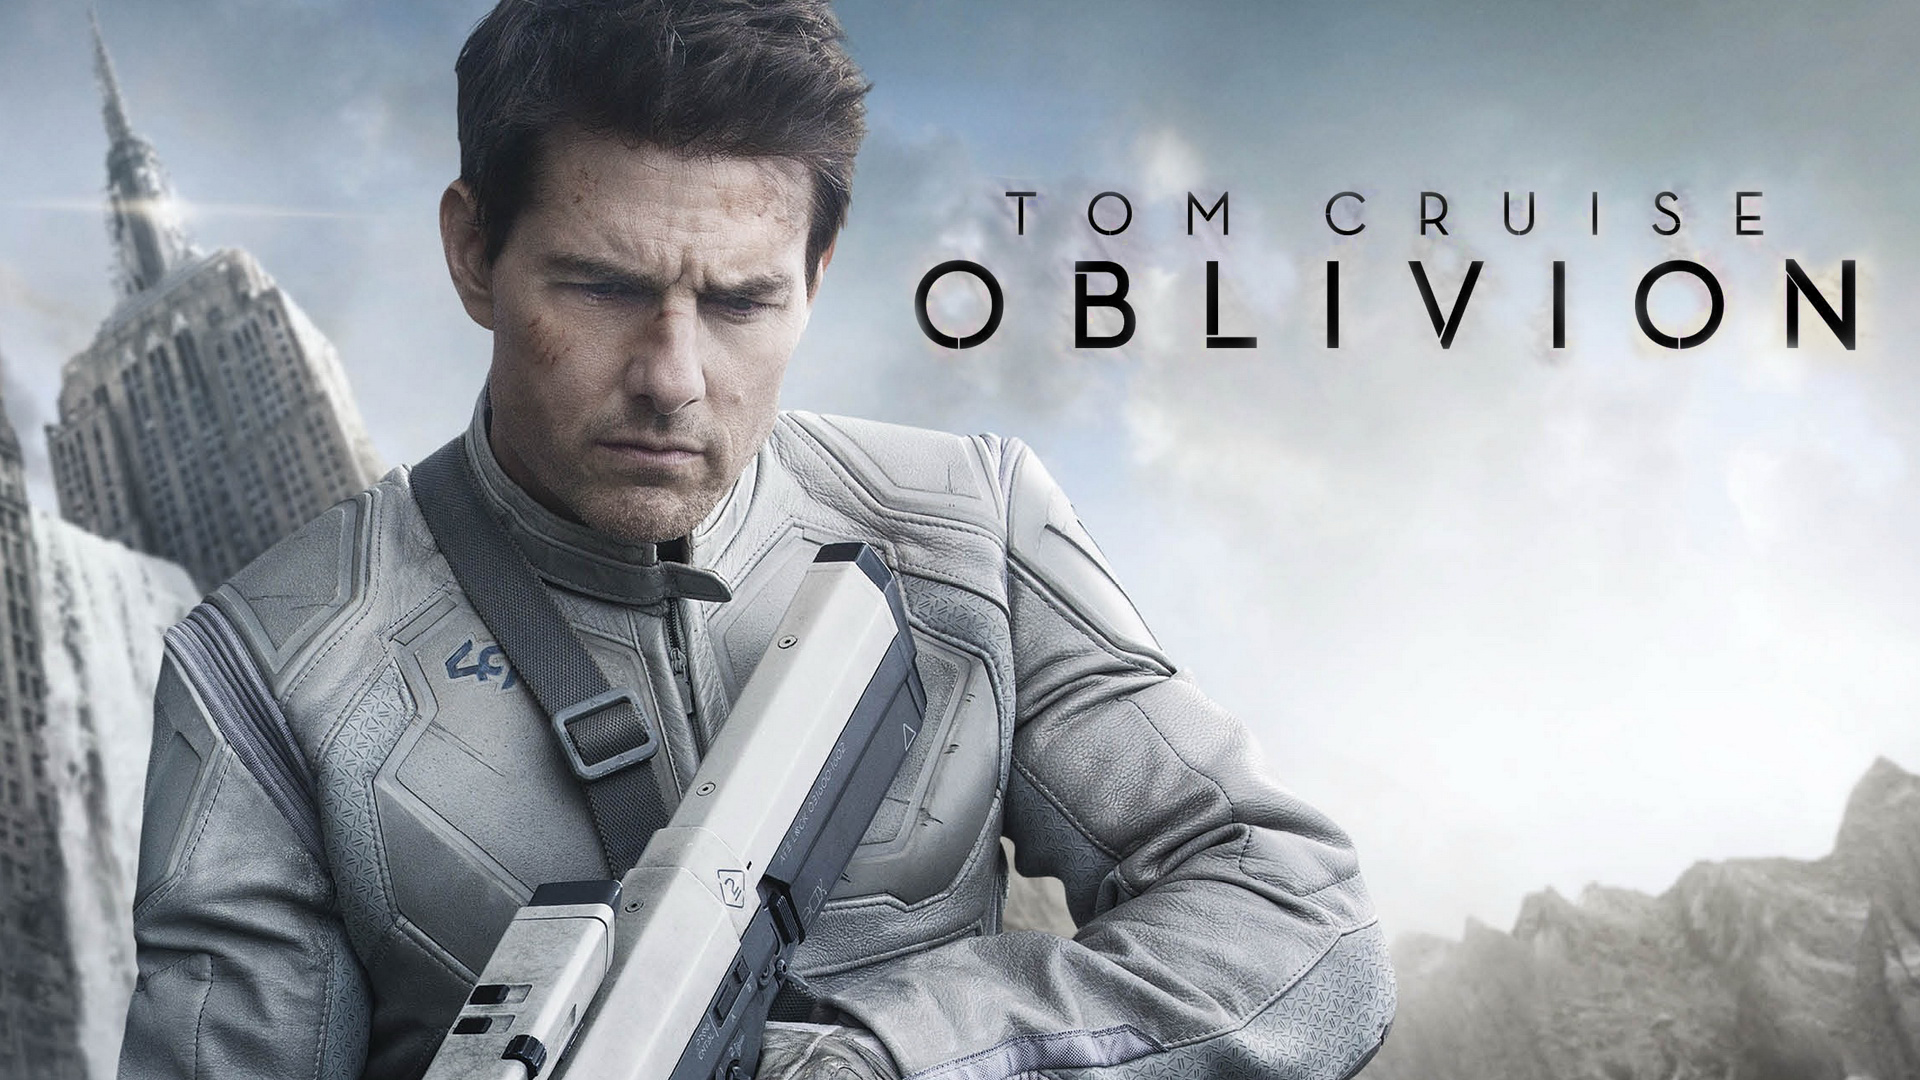 Tom Cruise Oblivion Wallpapers 1920x1080